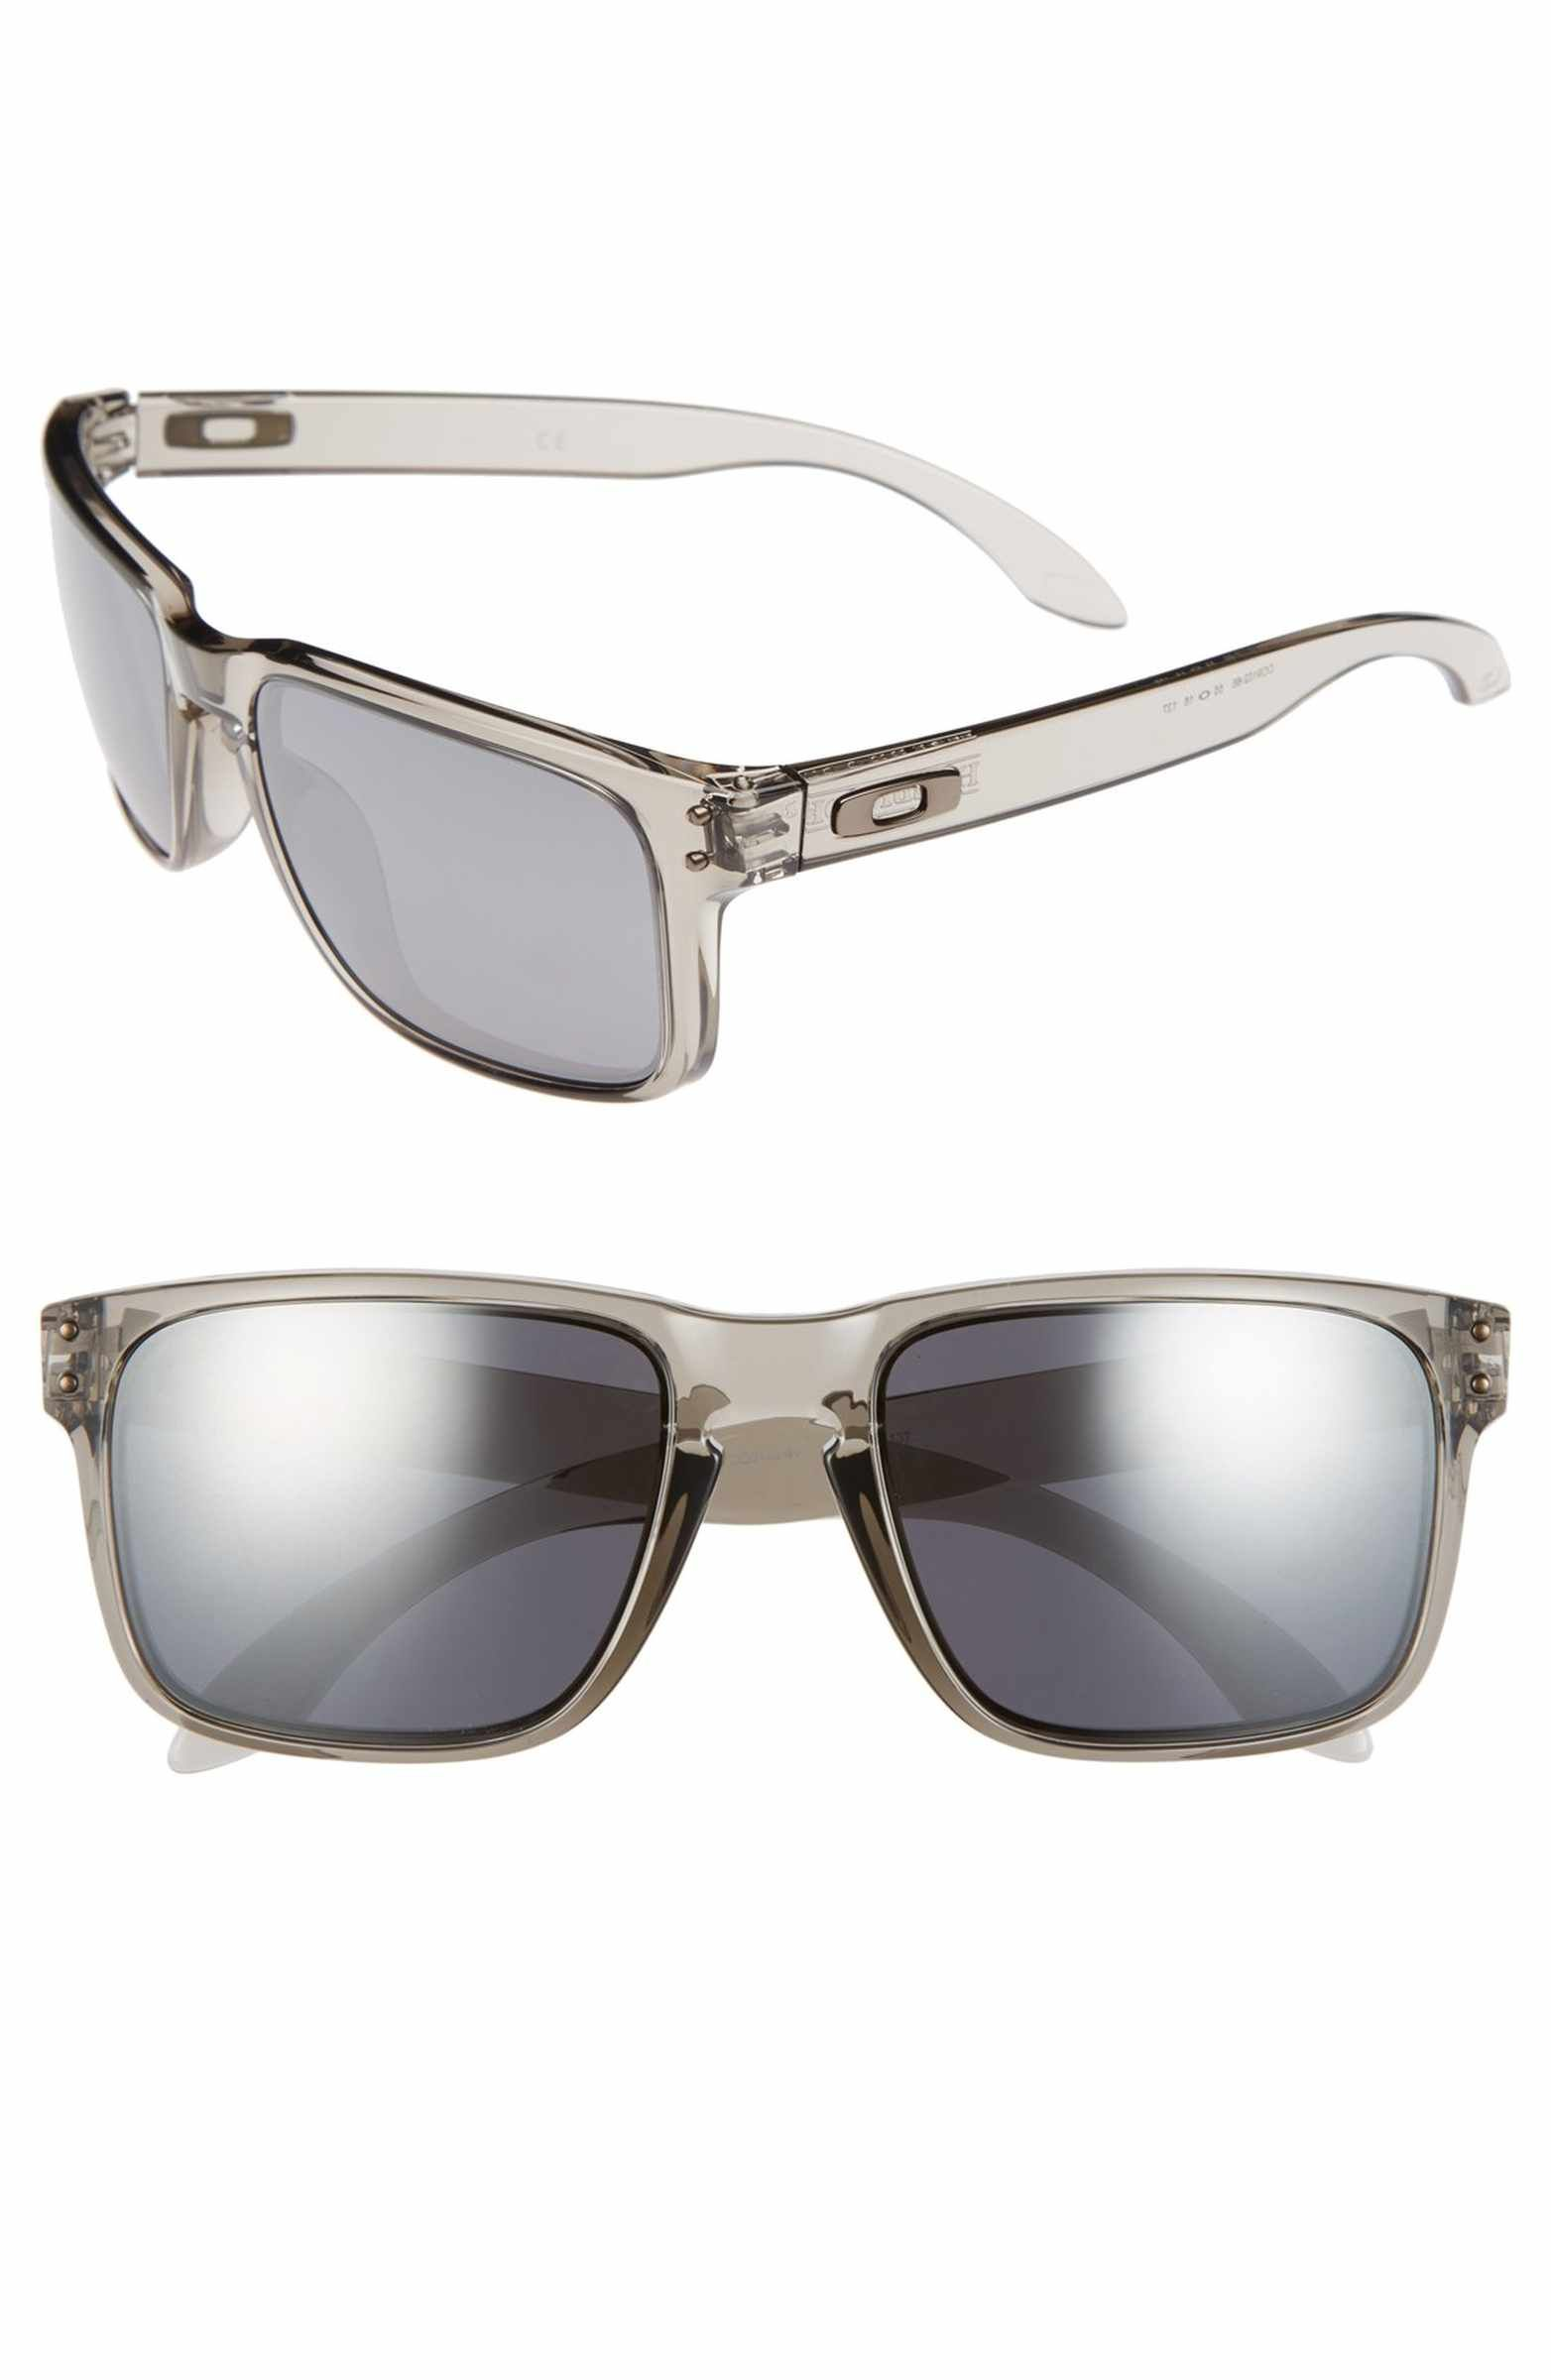 Main Image - Oakley  Holbrook - Ink Collection  55mm Sunglasses ... 91d82db0cdc